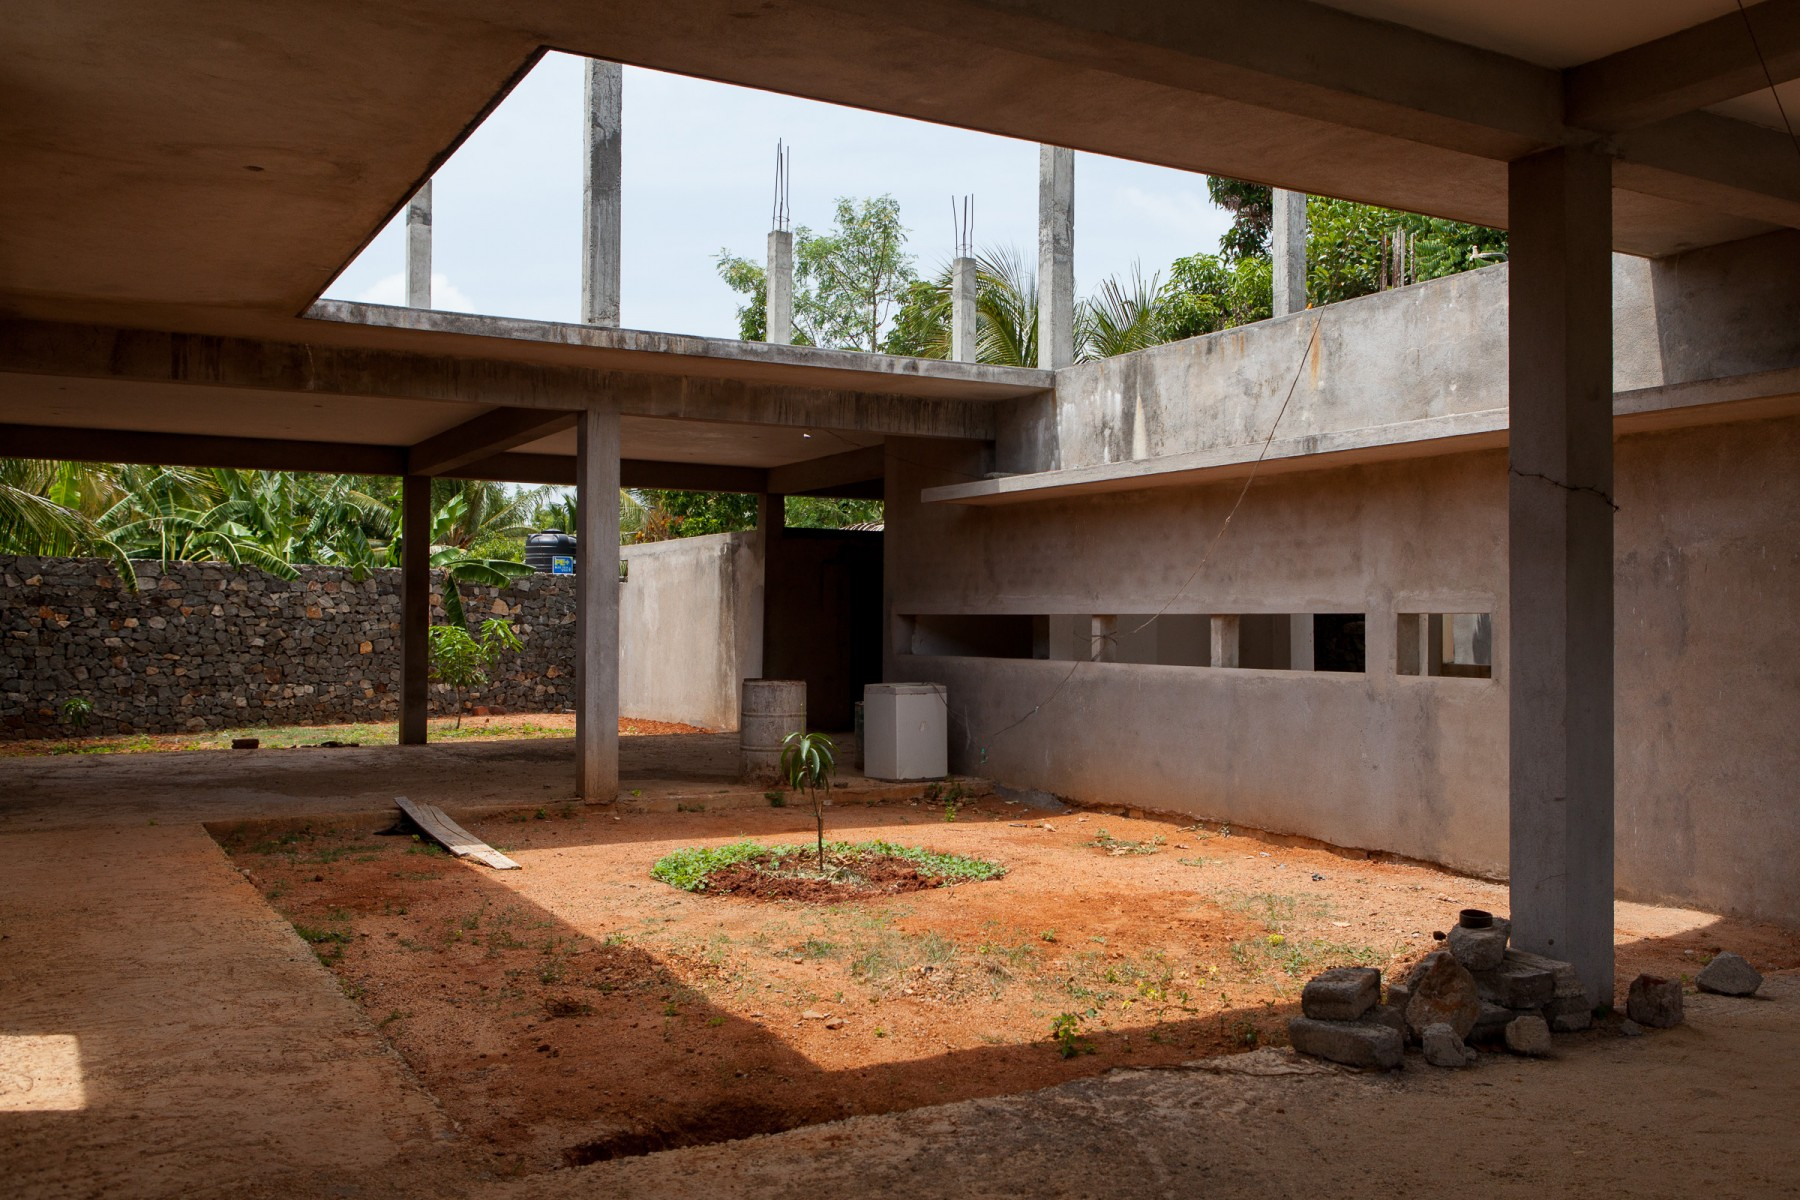 A palm tree sapling planted in the middle of an atrium in a construction site just outside Anuradhapura.